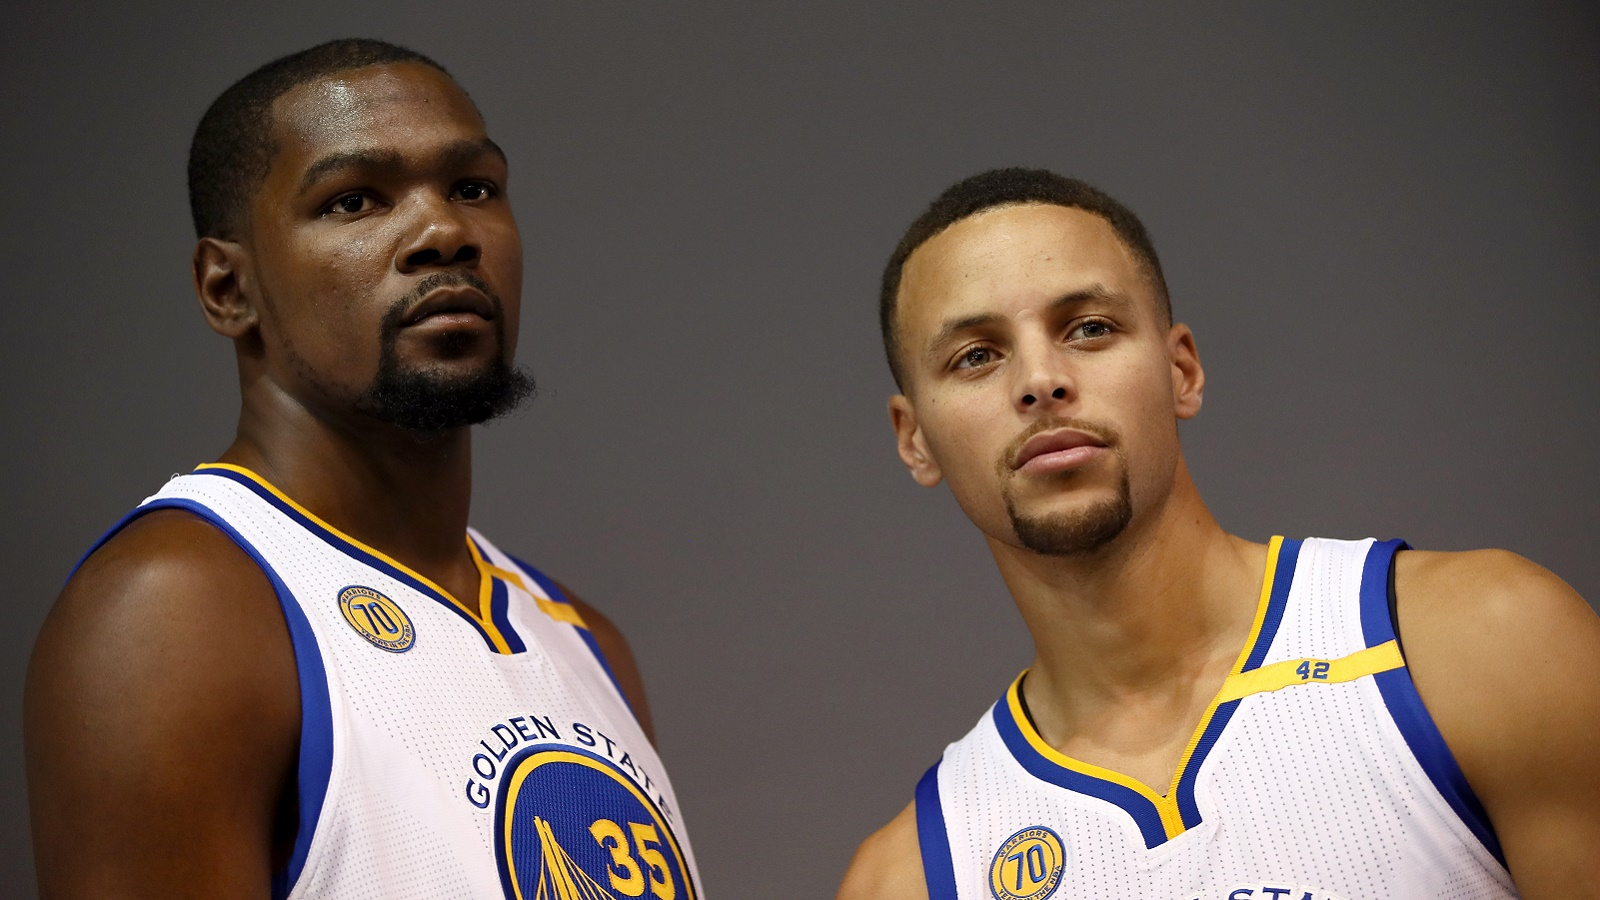 093016-NBA-Golden-State-Warriors-Kevin-Durant-Stephen-Curry